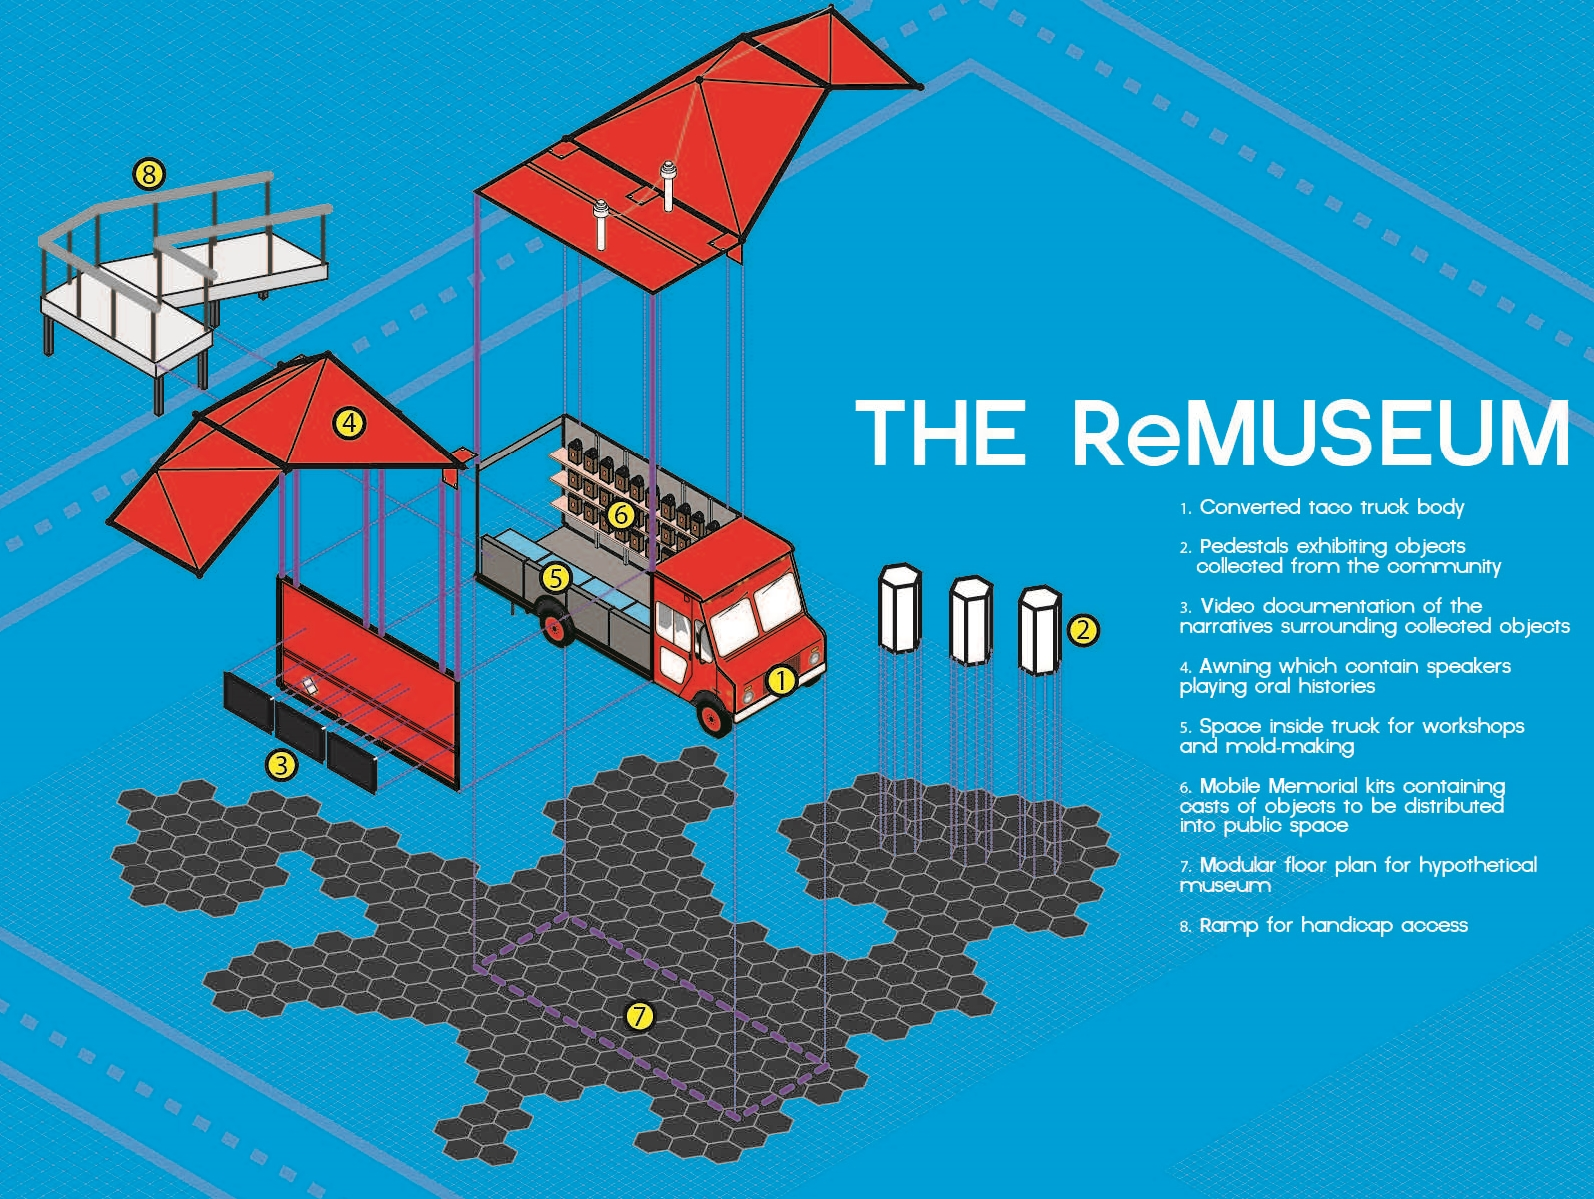 ReMuseum by Floating Lab Collective.